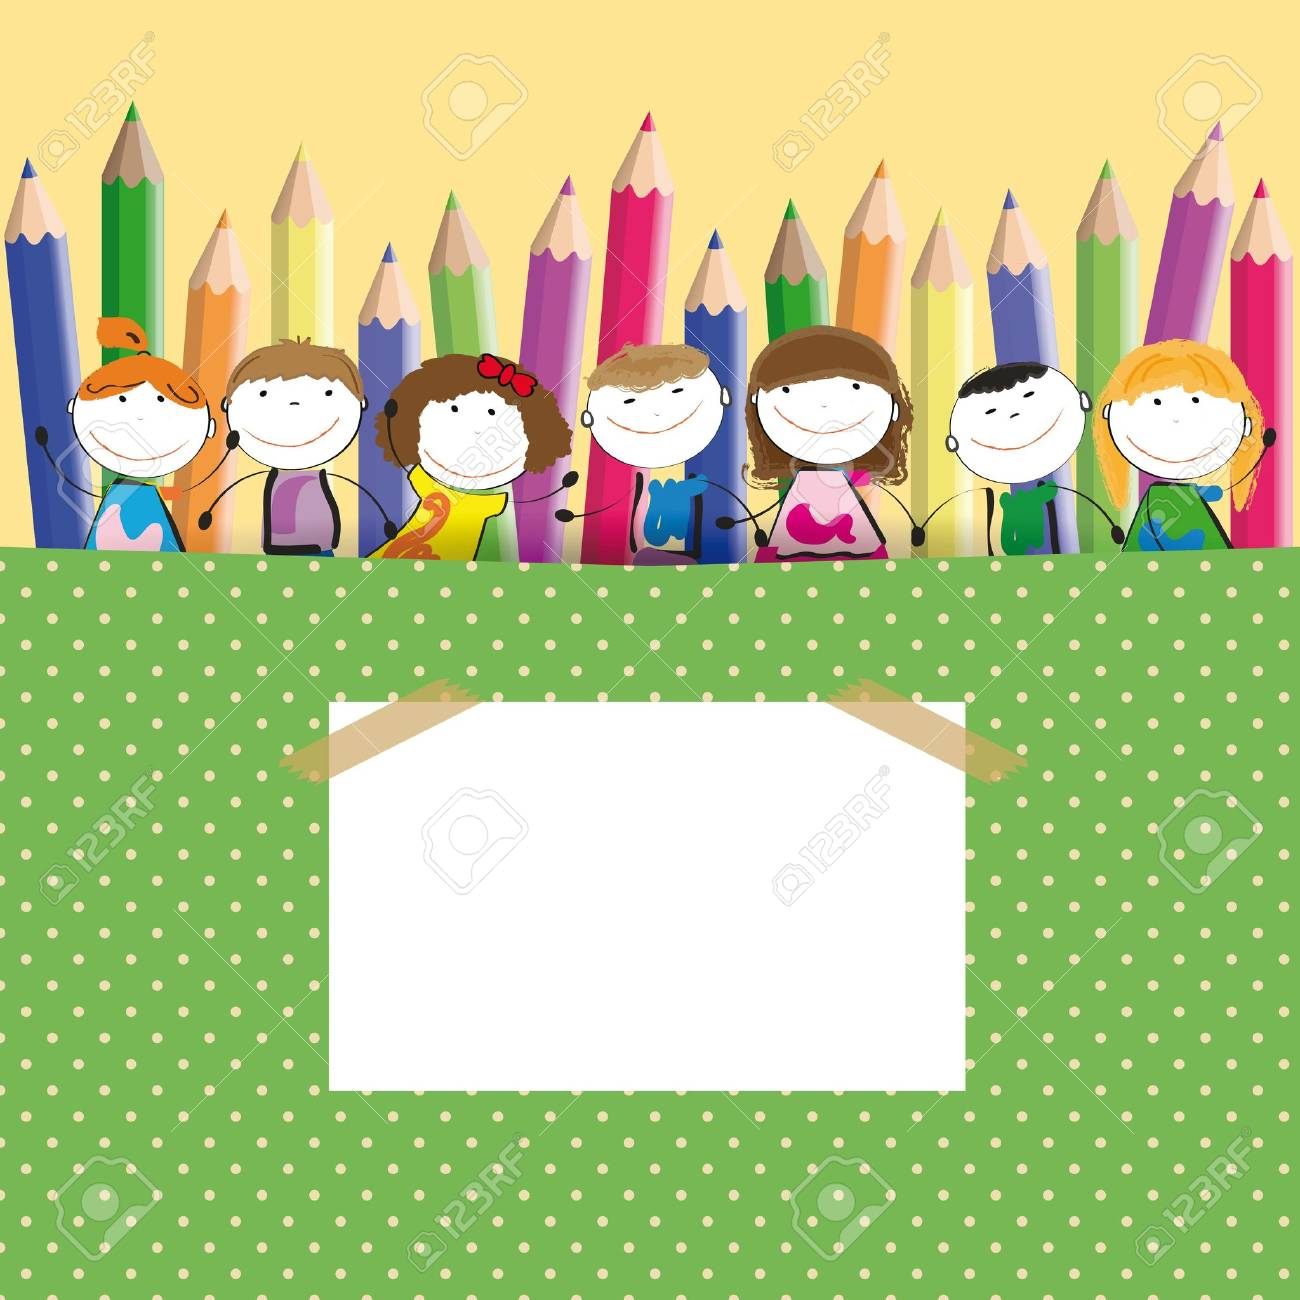 Background with happy kids and colorful crayons Stock Vector - 13362769